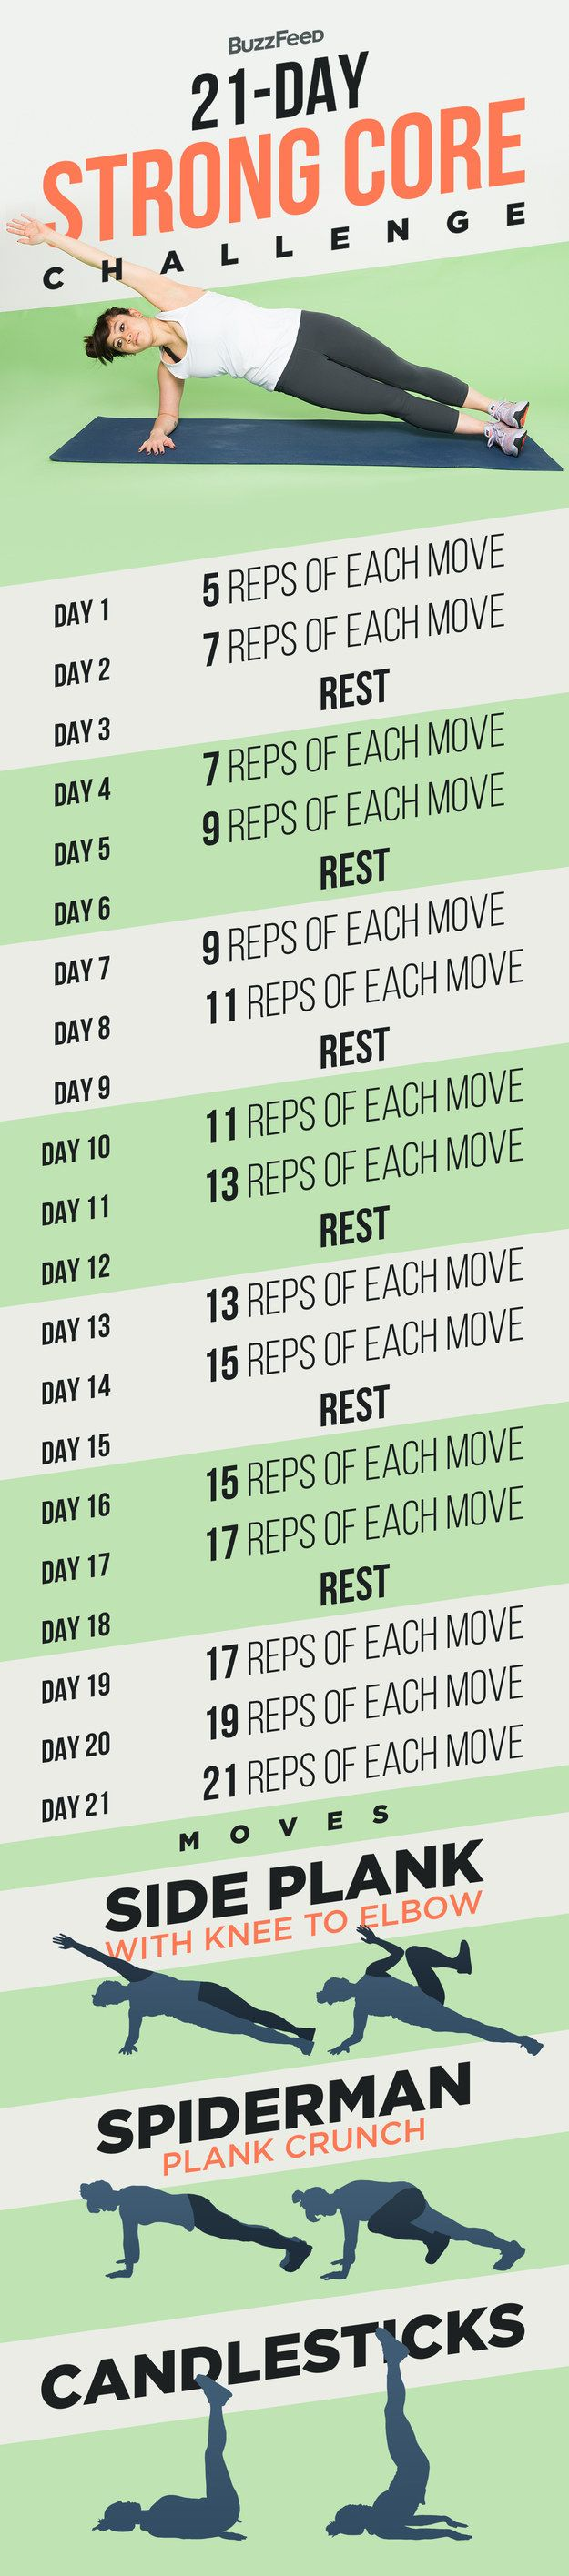 Here's your daily schedule for the 21-day strong core challenge...